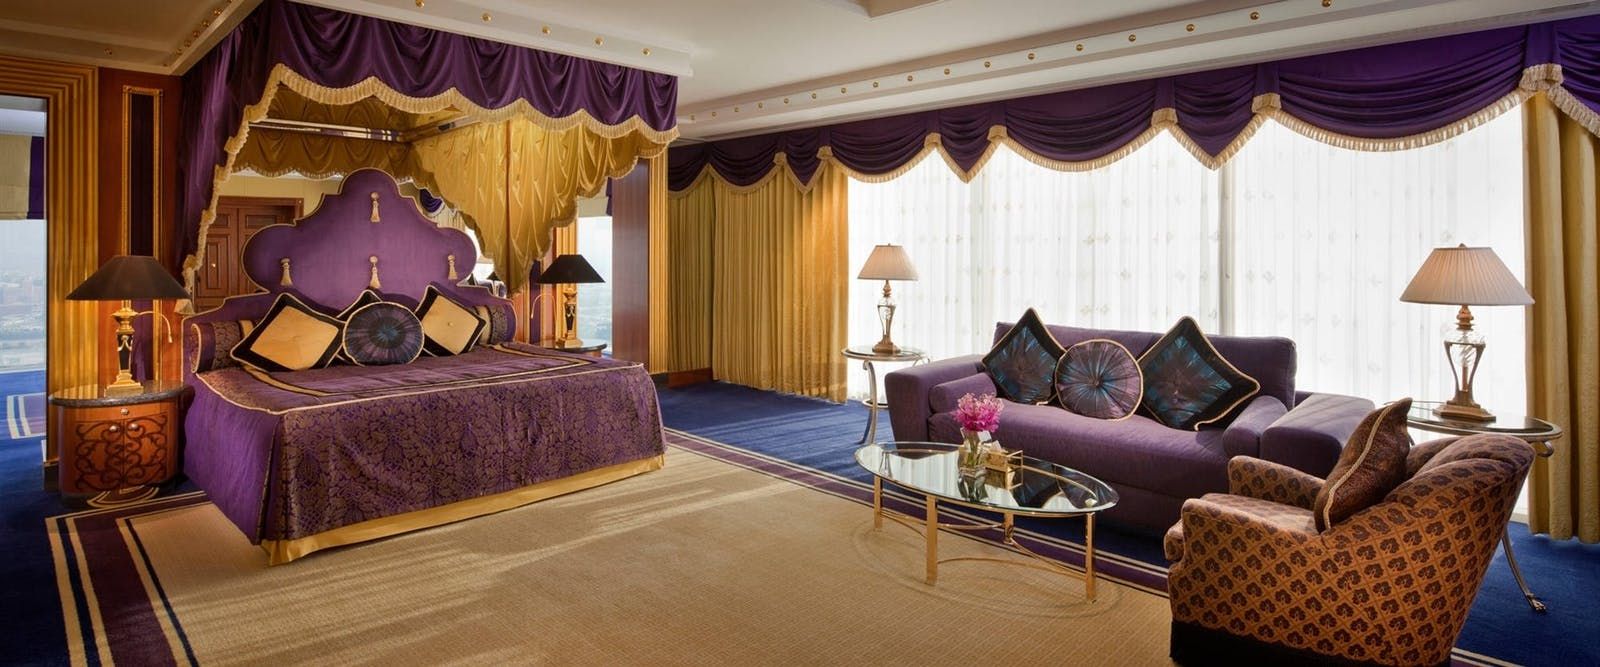 Diplomatic suite at Burj Al Arab, Dubai